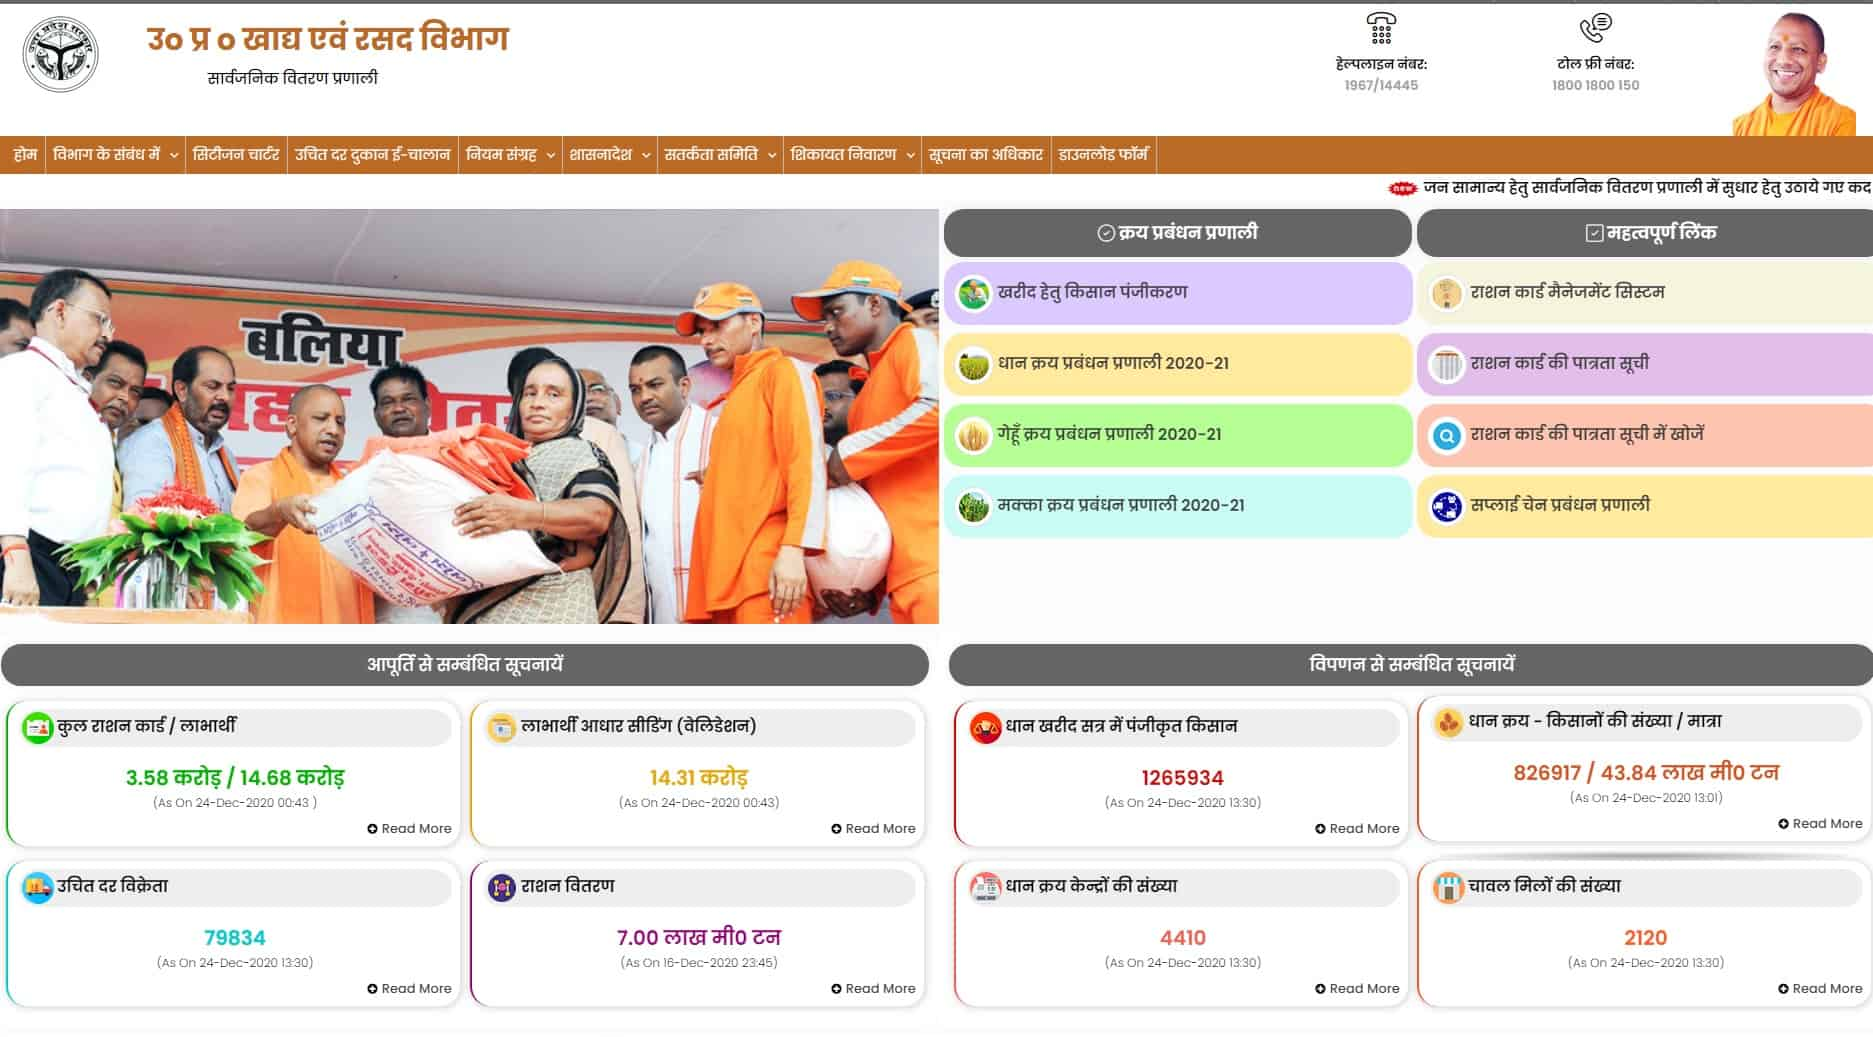 how to Know FCS and Get UP Ration Card Details easily in just 10 minute